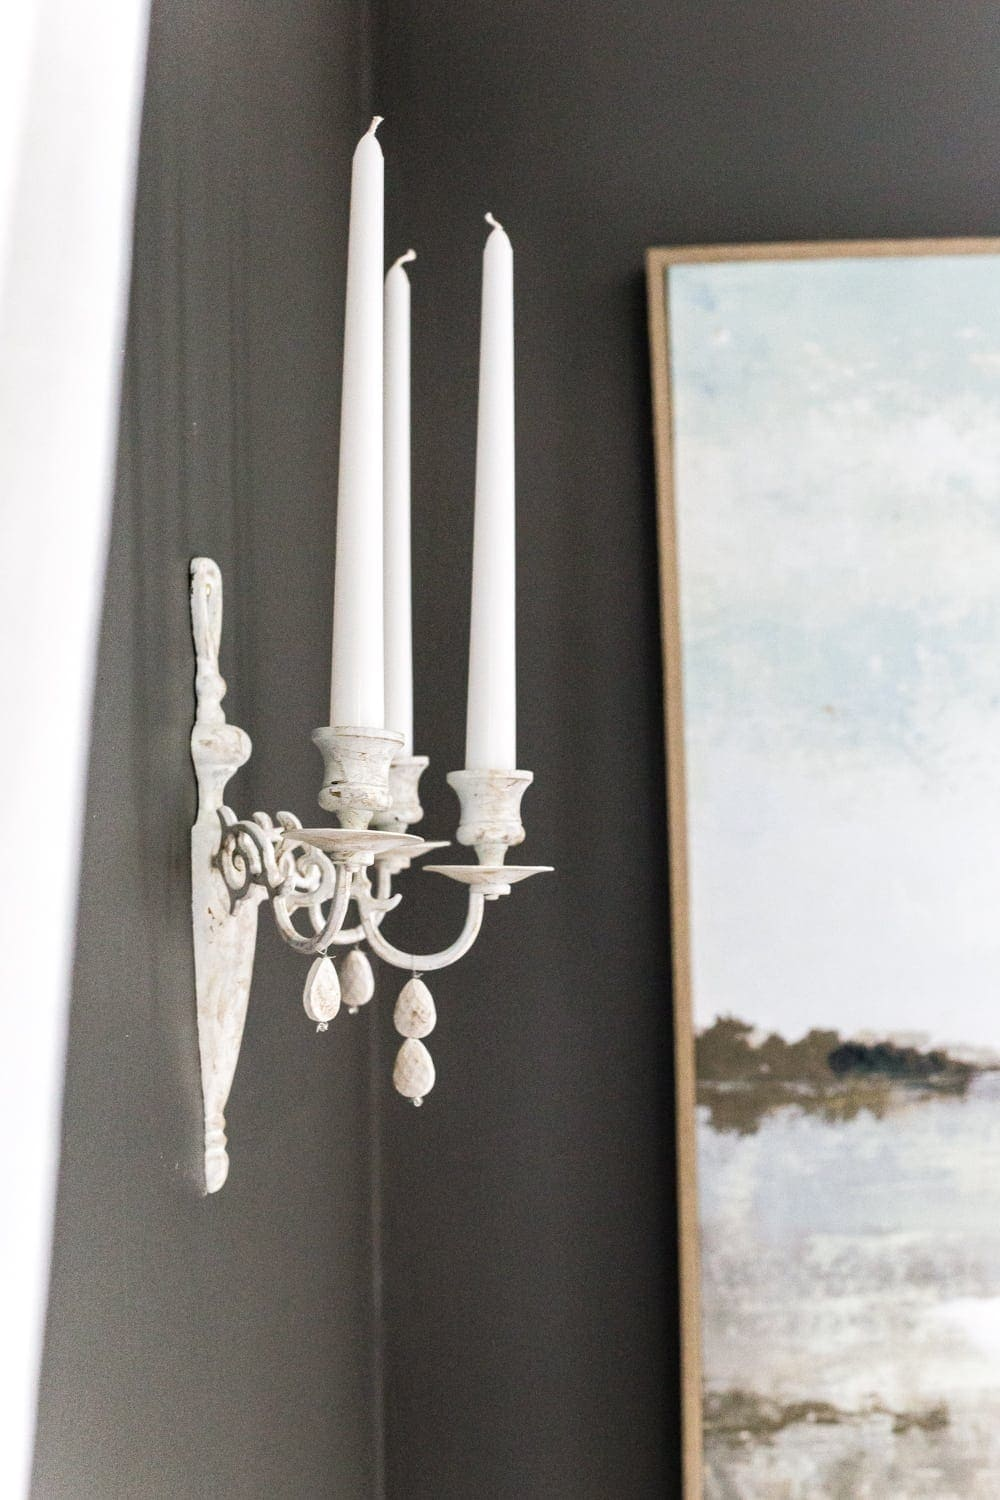 DIY French sconce from 80s brass fixtures